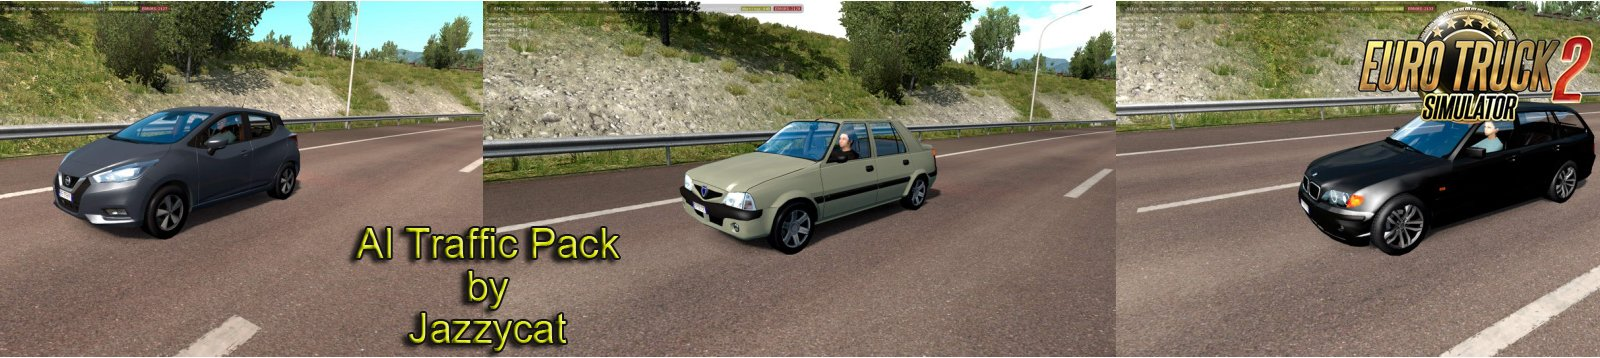 AI Traffic Pack v9.3 by Jazzycat